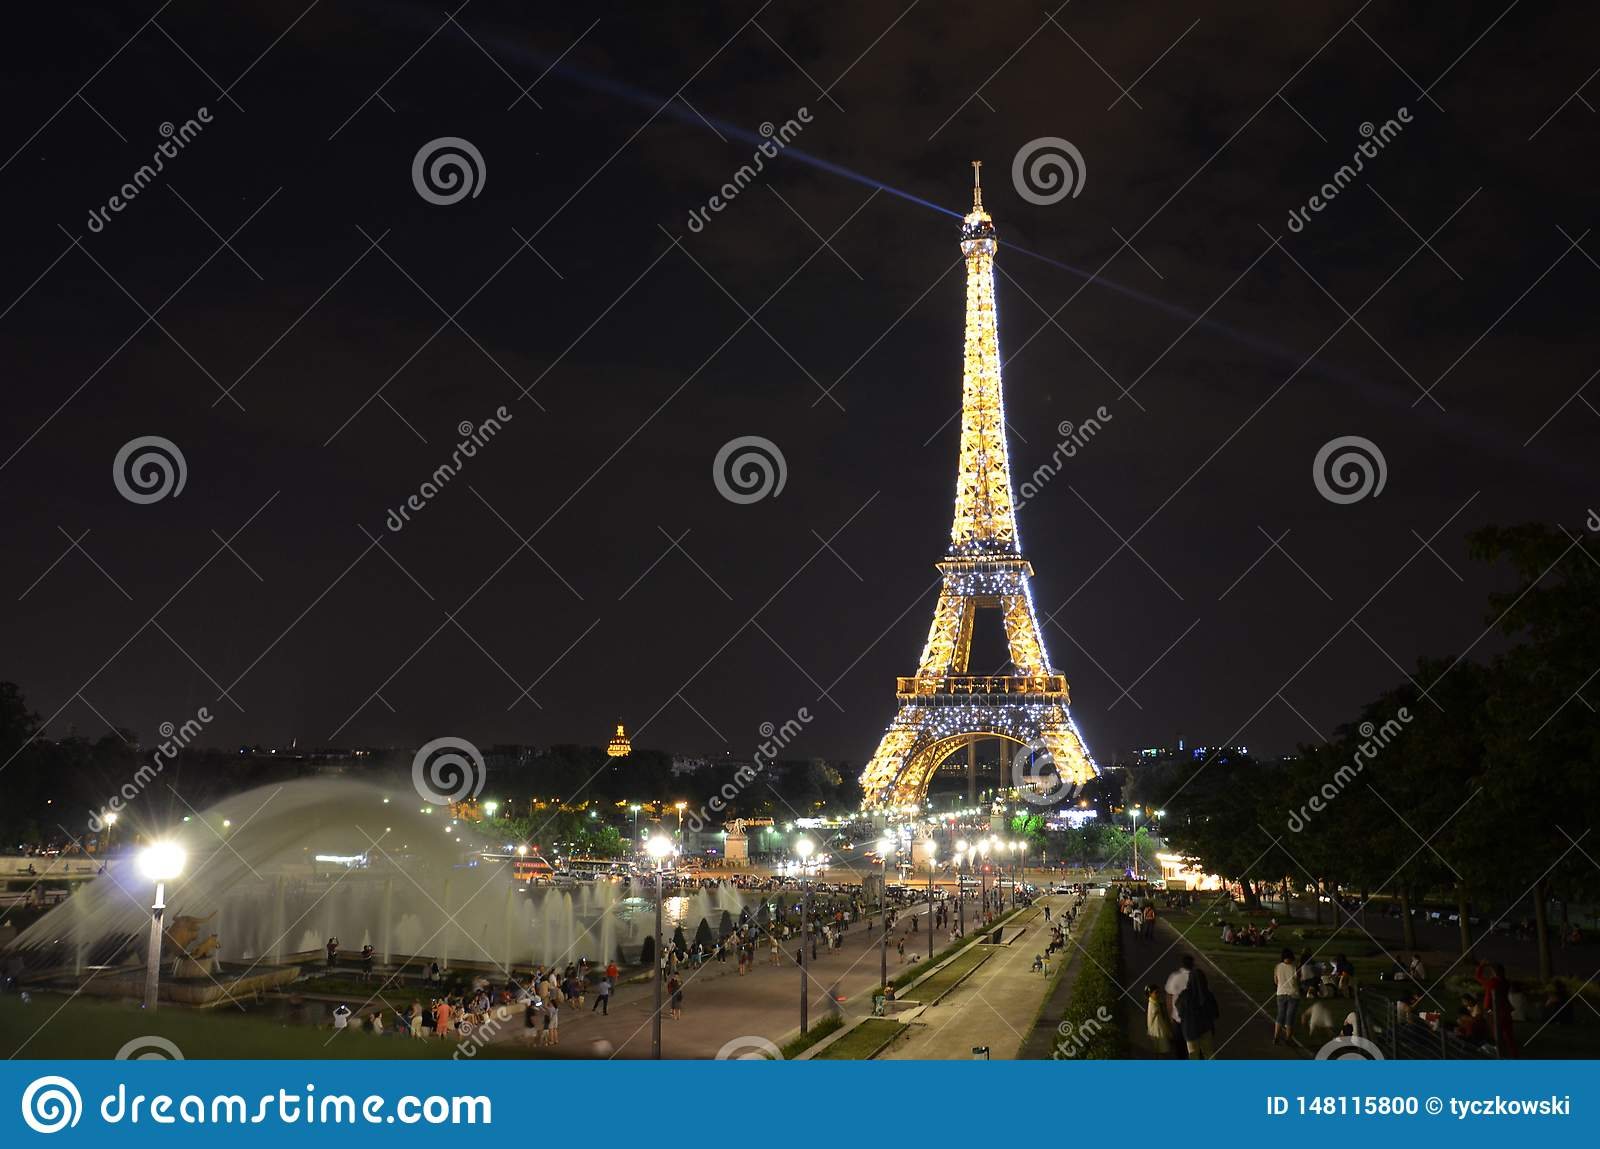 Eiffel Tower in Paris - night view